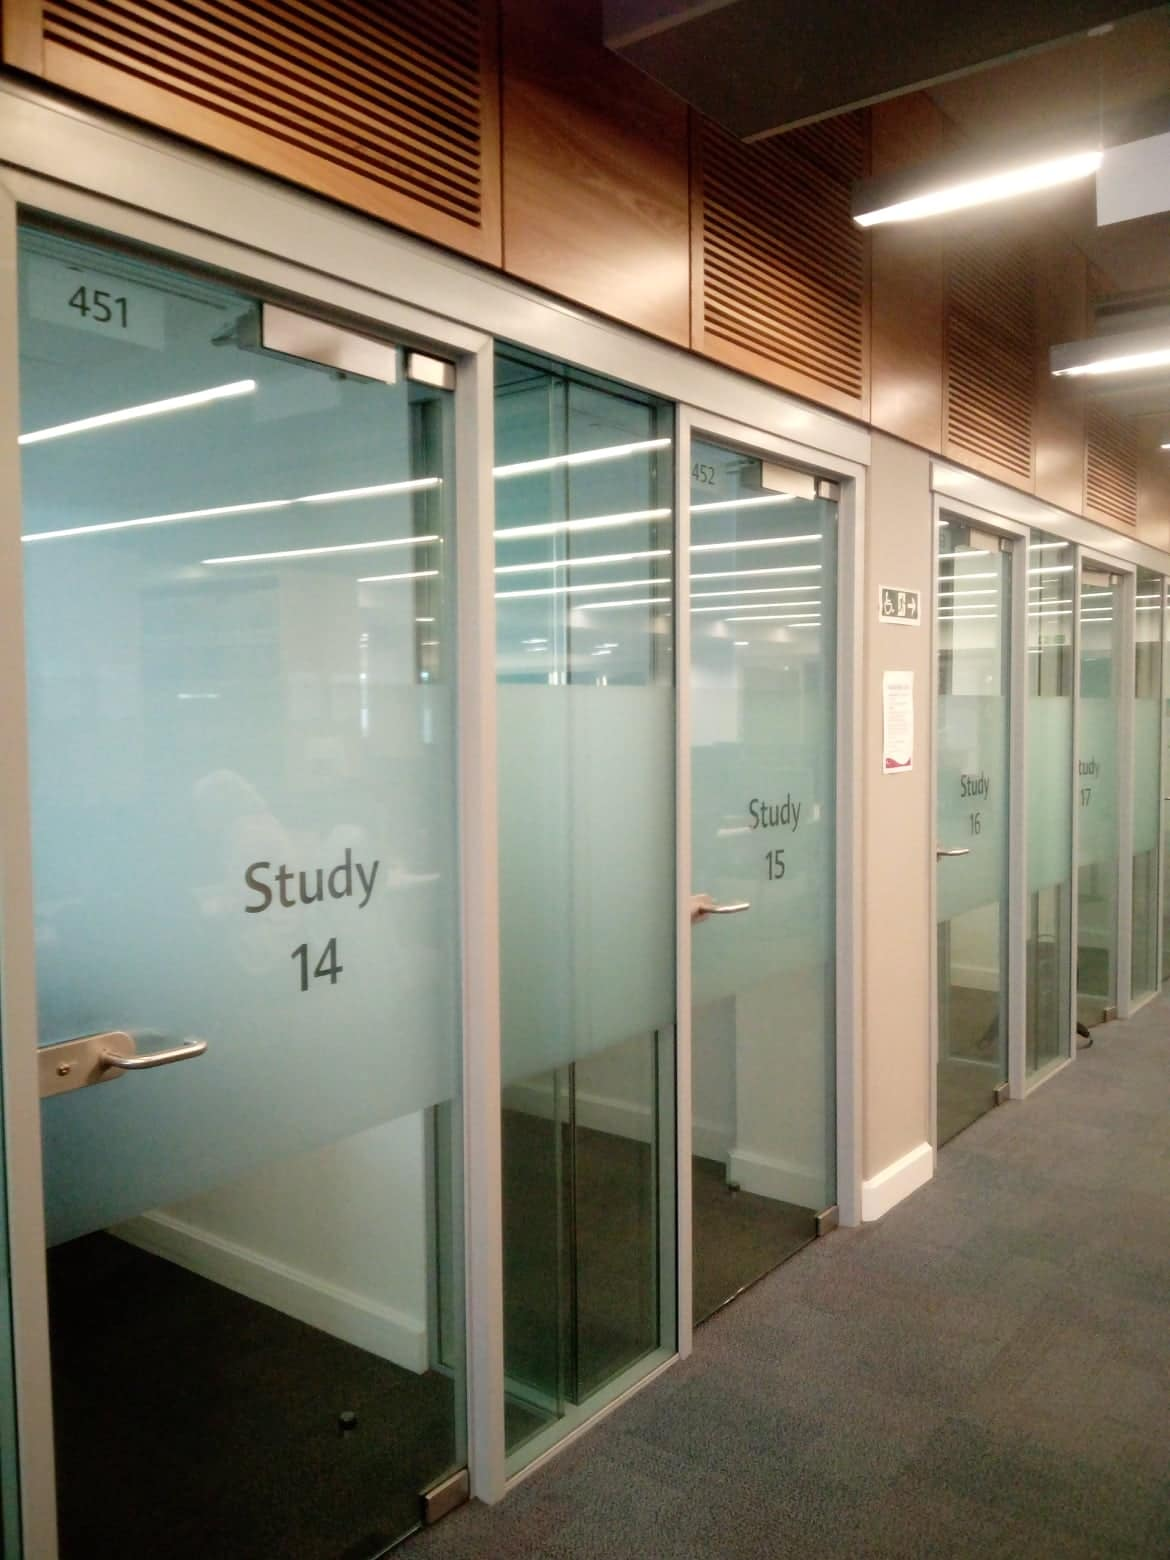 Library Study Room Ideas: University Library : Study Rooms